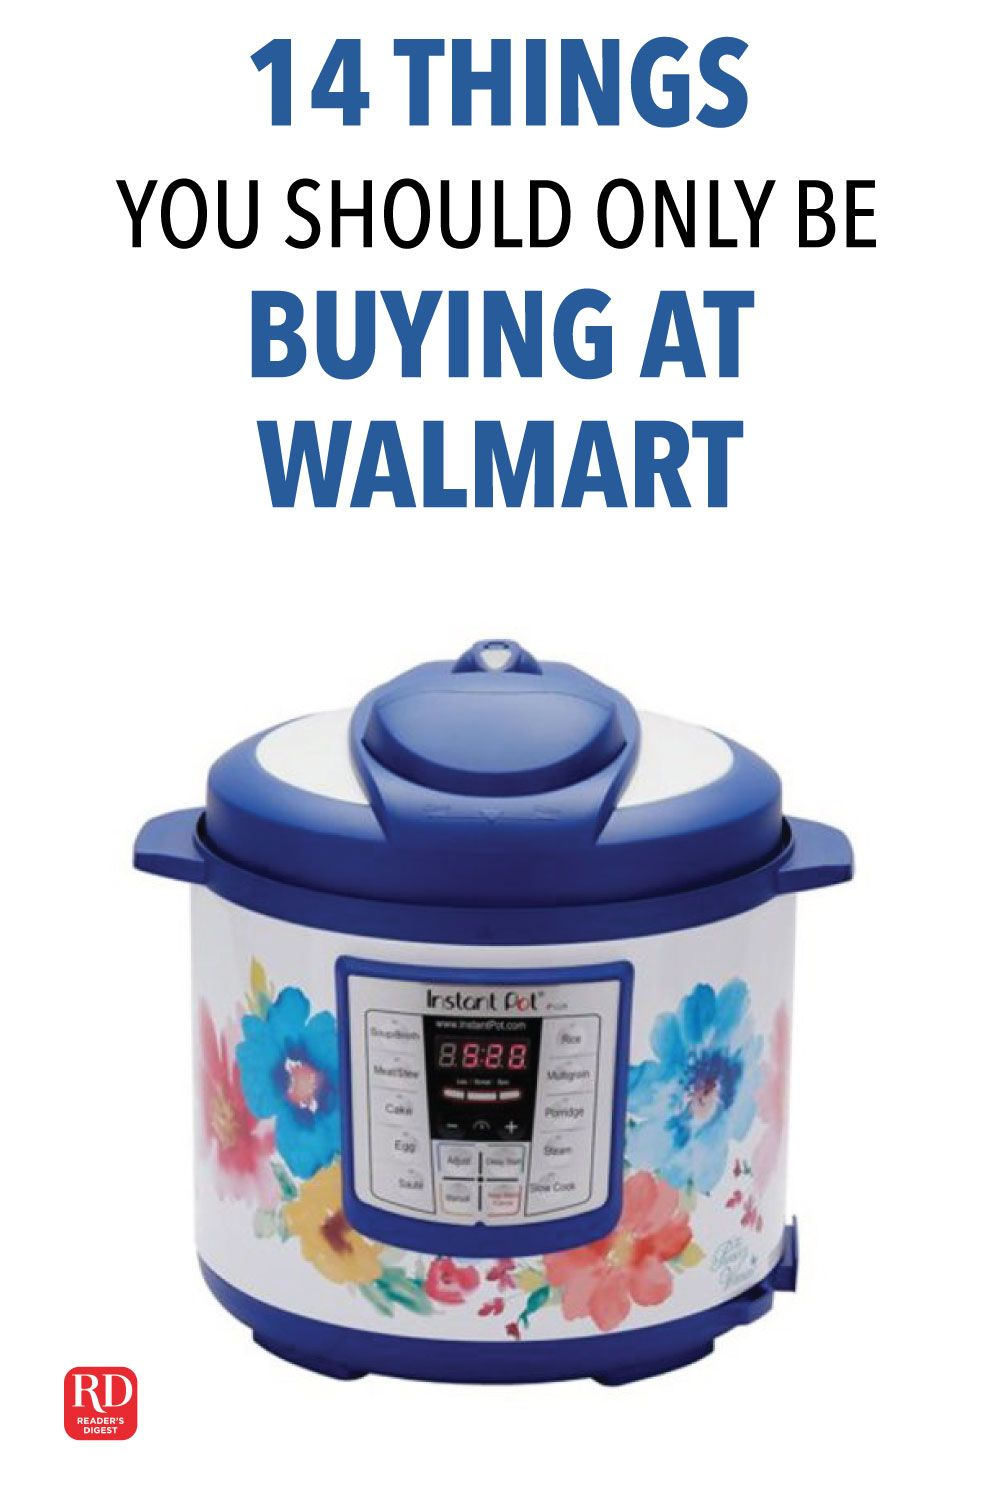 14 Things You Should Only Be Buying At Walmart Everyday Essentials Products Stuff To Buy Walmart